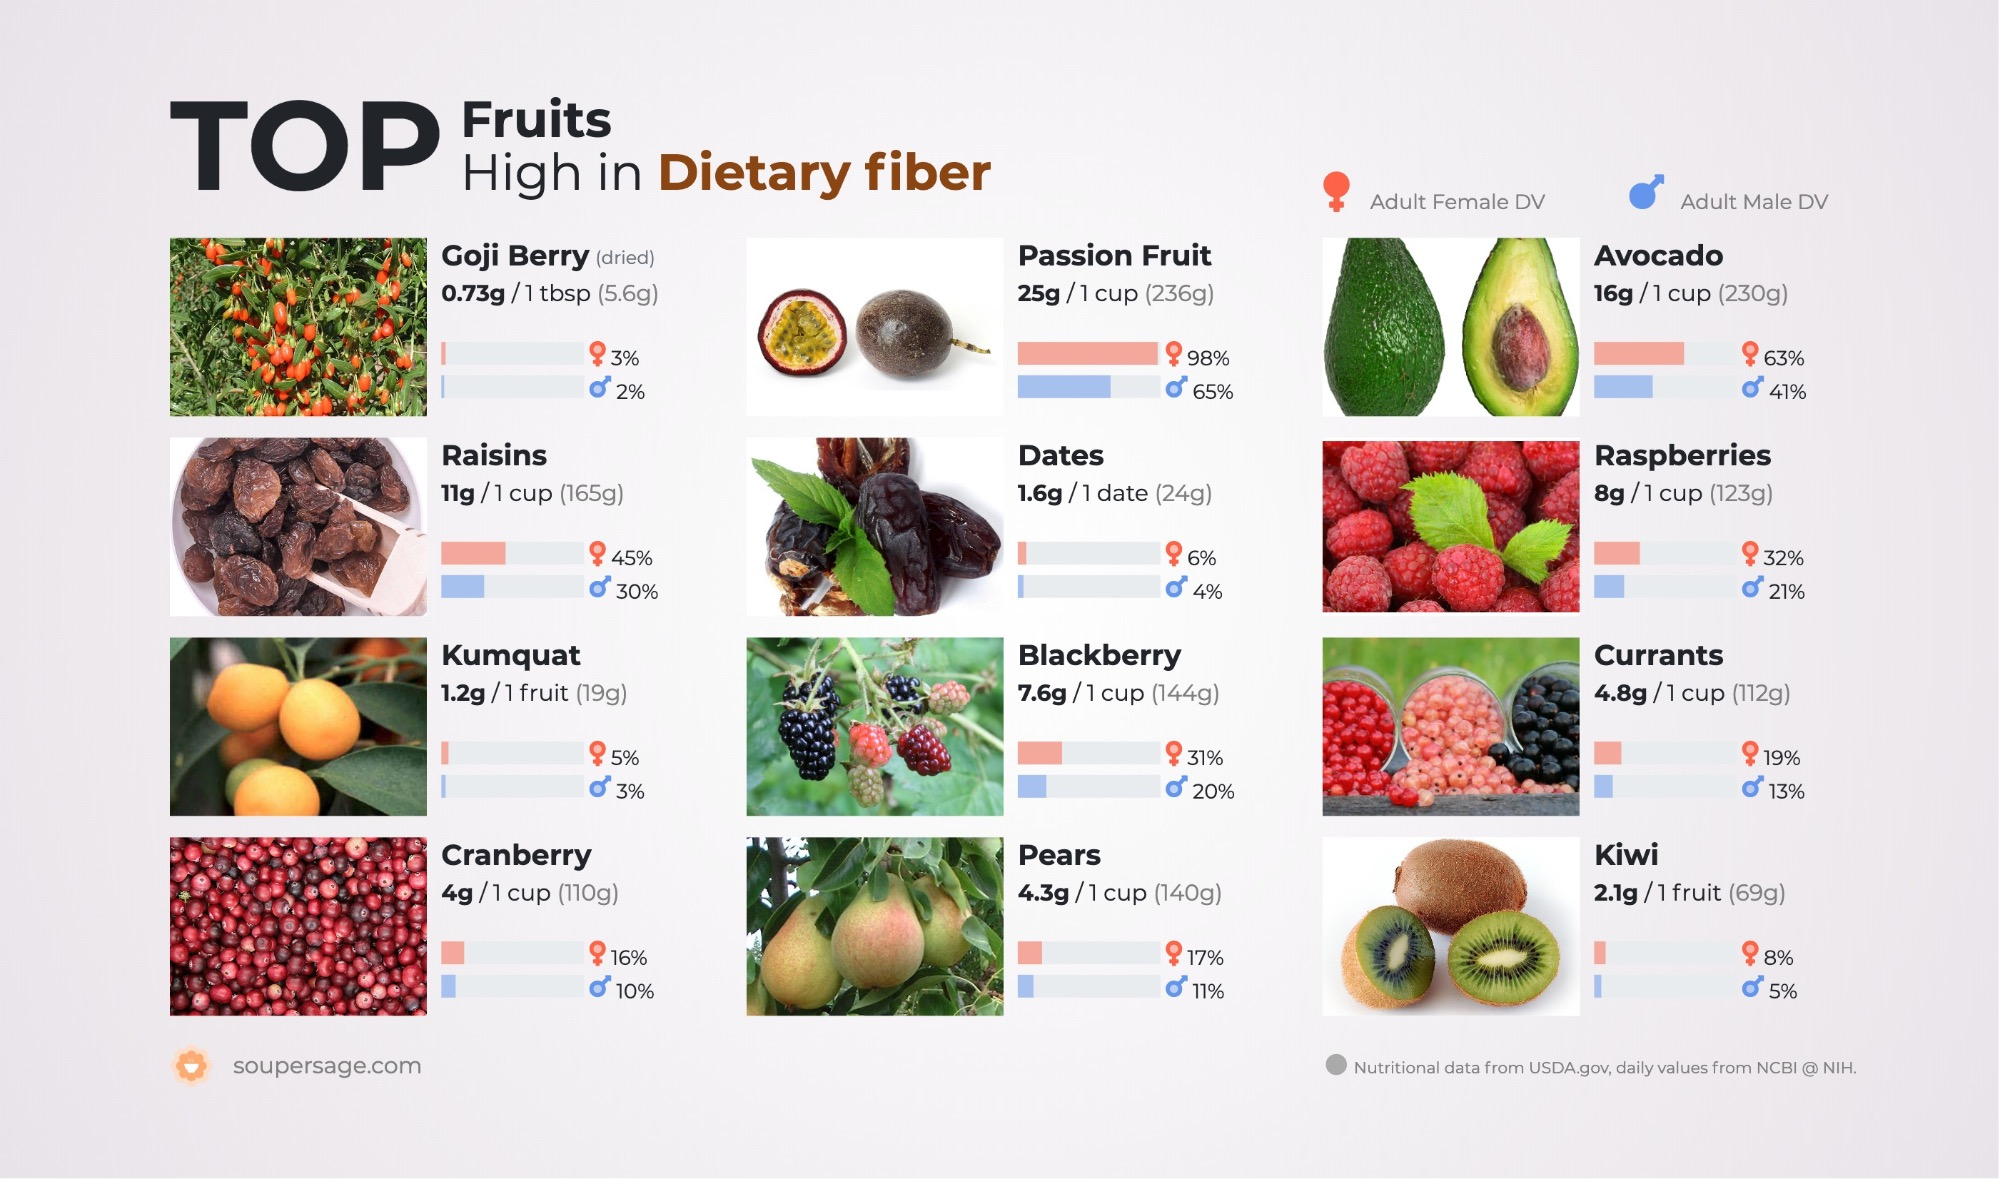 image of Top Fruits High in Dietary fiber